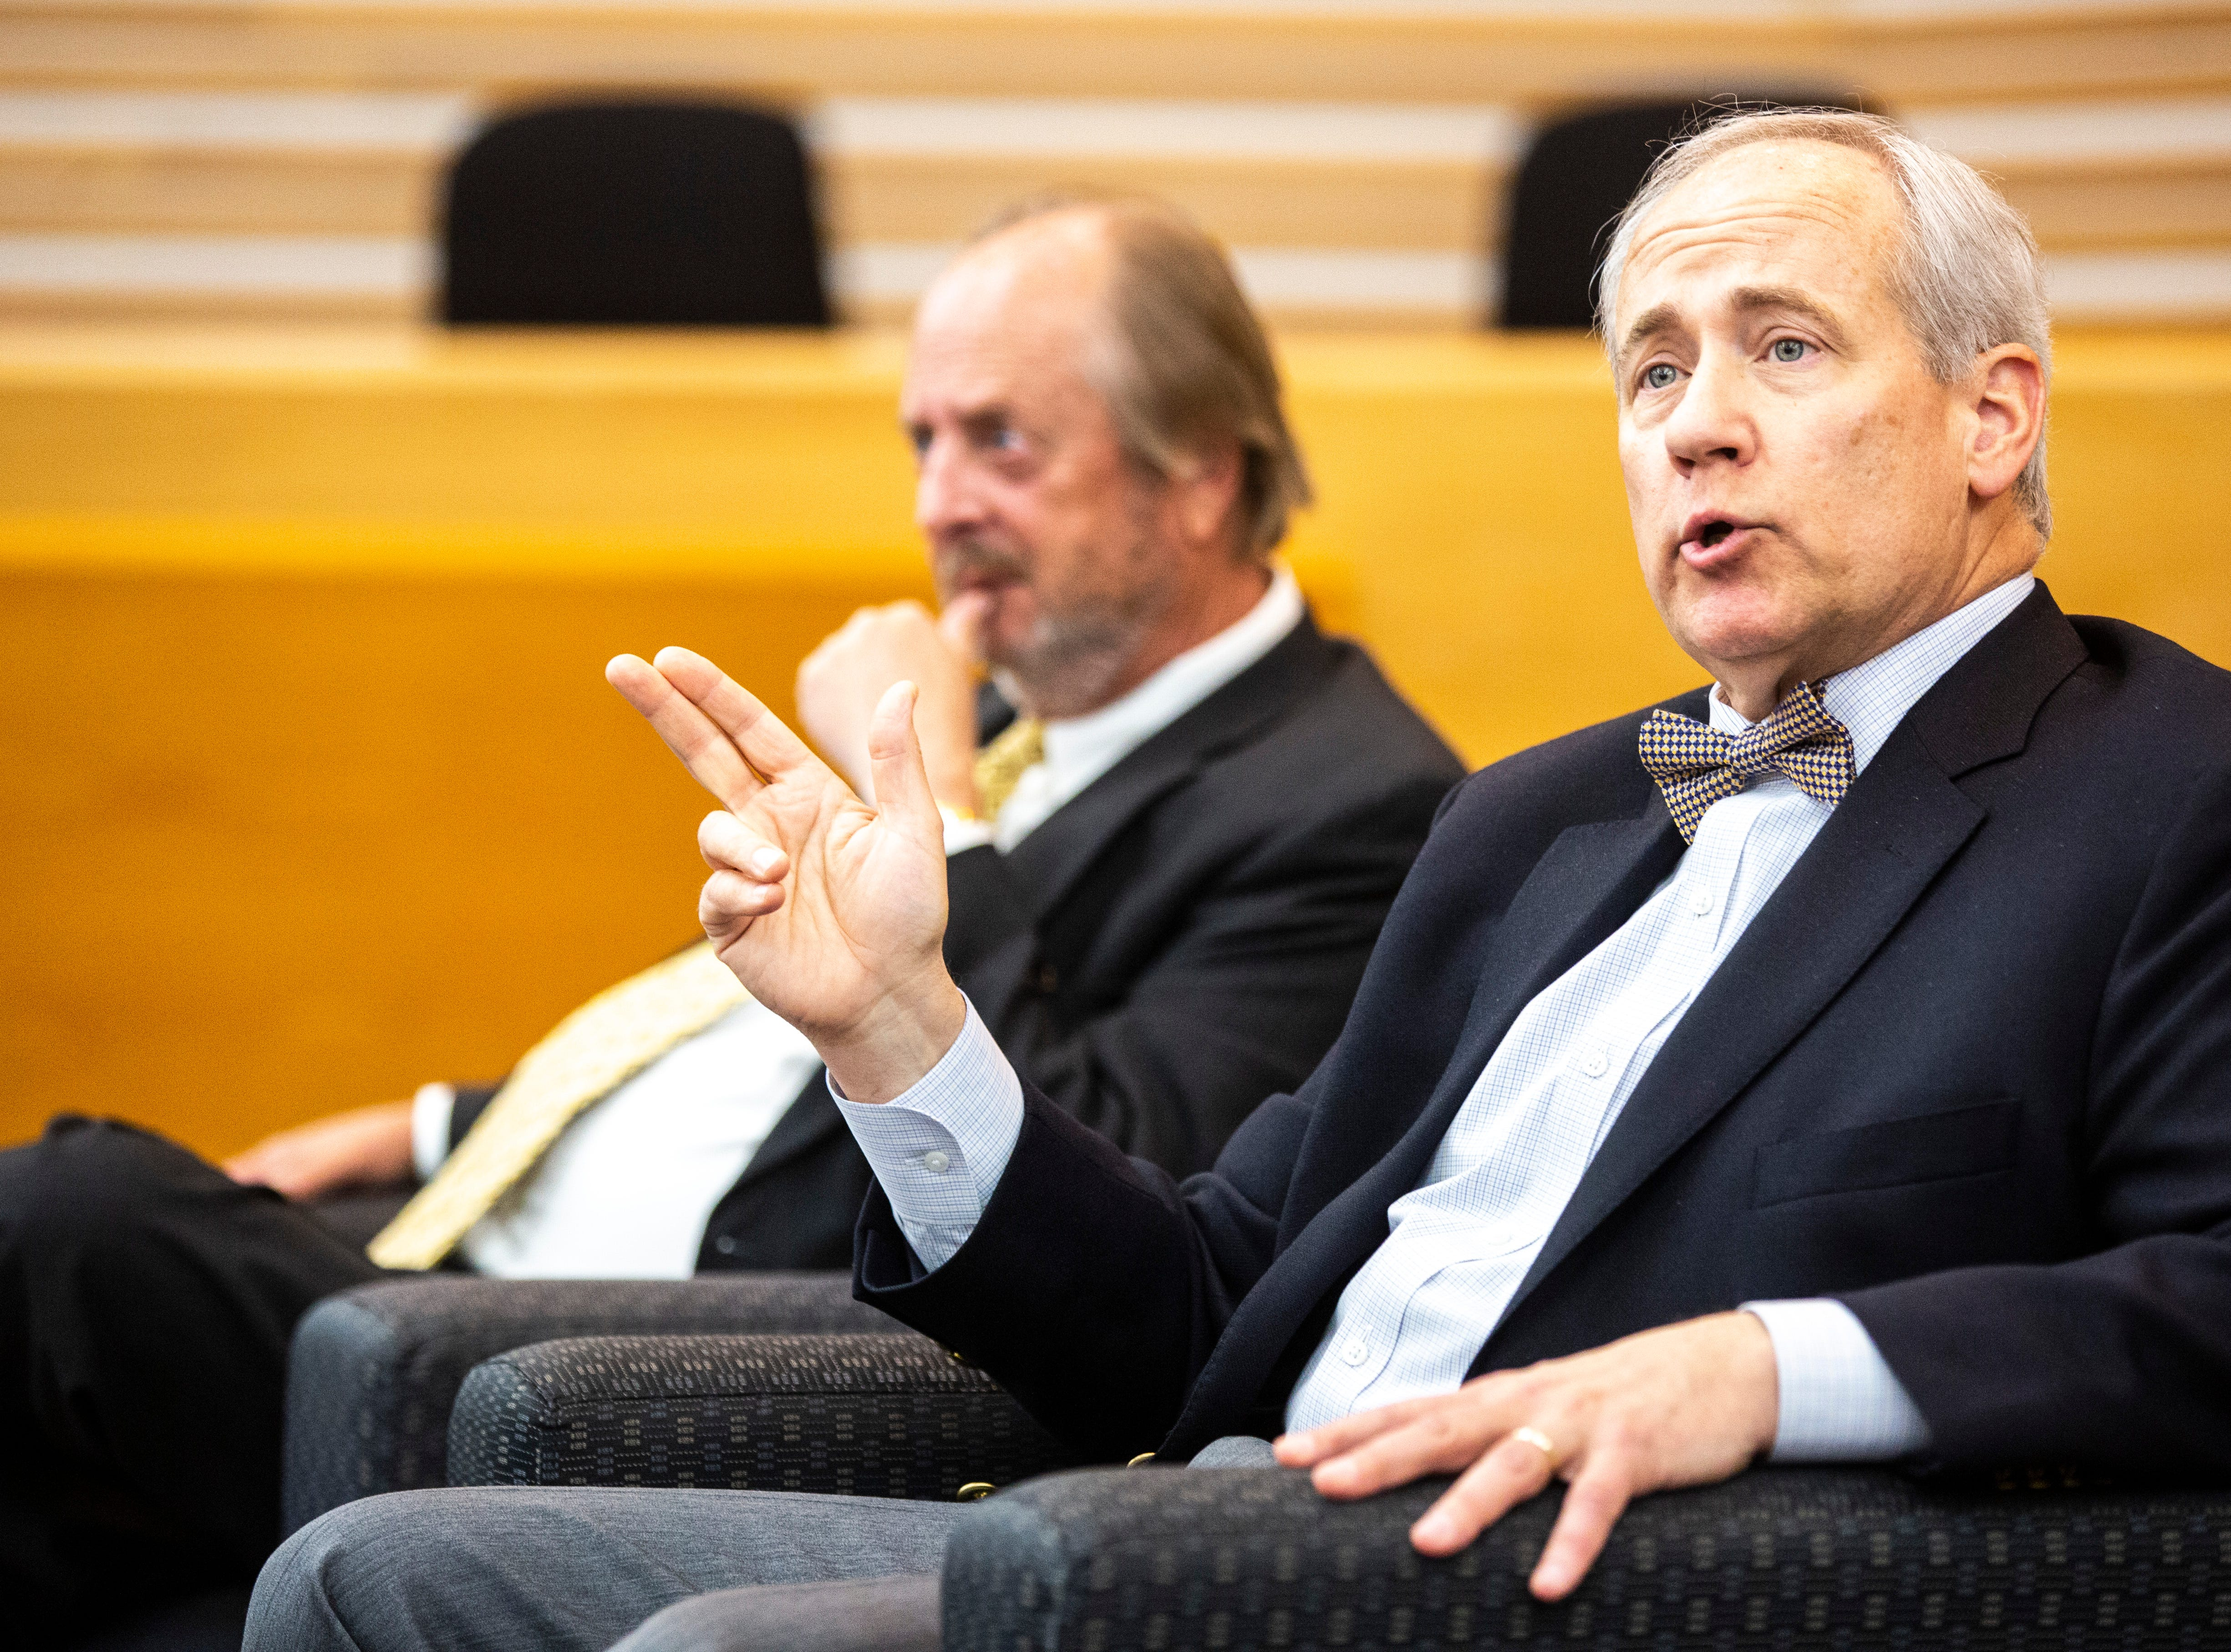 District 5 Judge Robert B. Hanson, right, speaks during a panel with former Iowa Supreme Court Justice David L. Baker regarding the Varnum v. Brien Iowa Supreme Court decision, Thursday, April 18, 2019, in the Boyd Law Building on the University of Iowa campus in Iowa City, Iowa.